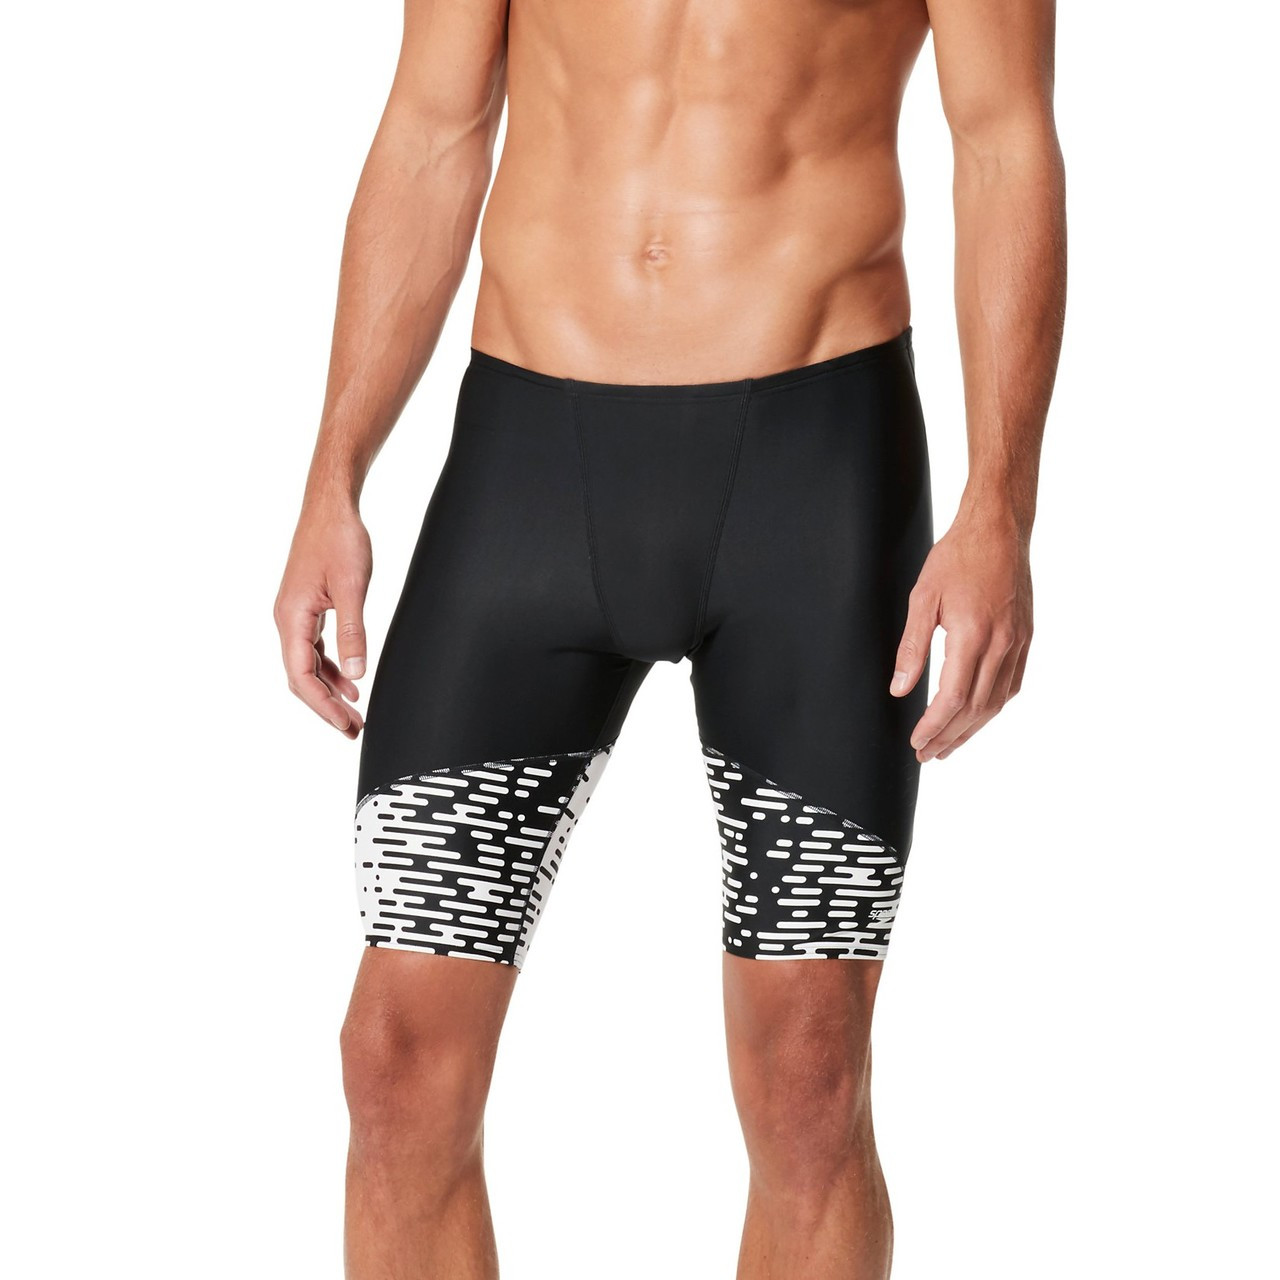 Speedo Men's Modern Matrix Jammer - 2019 price